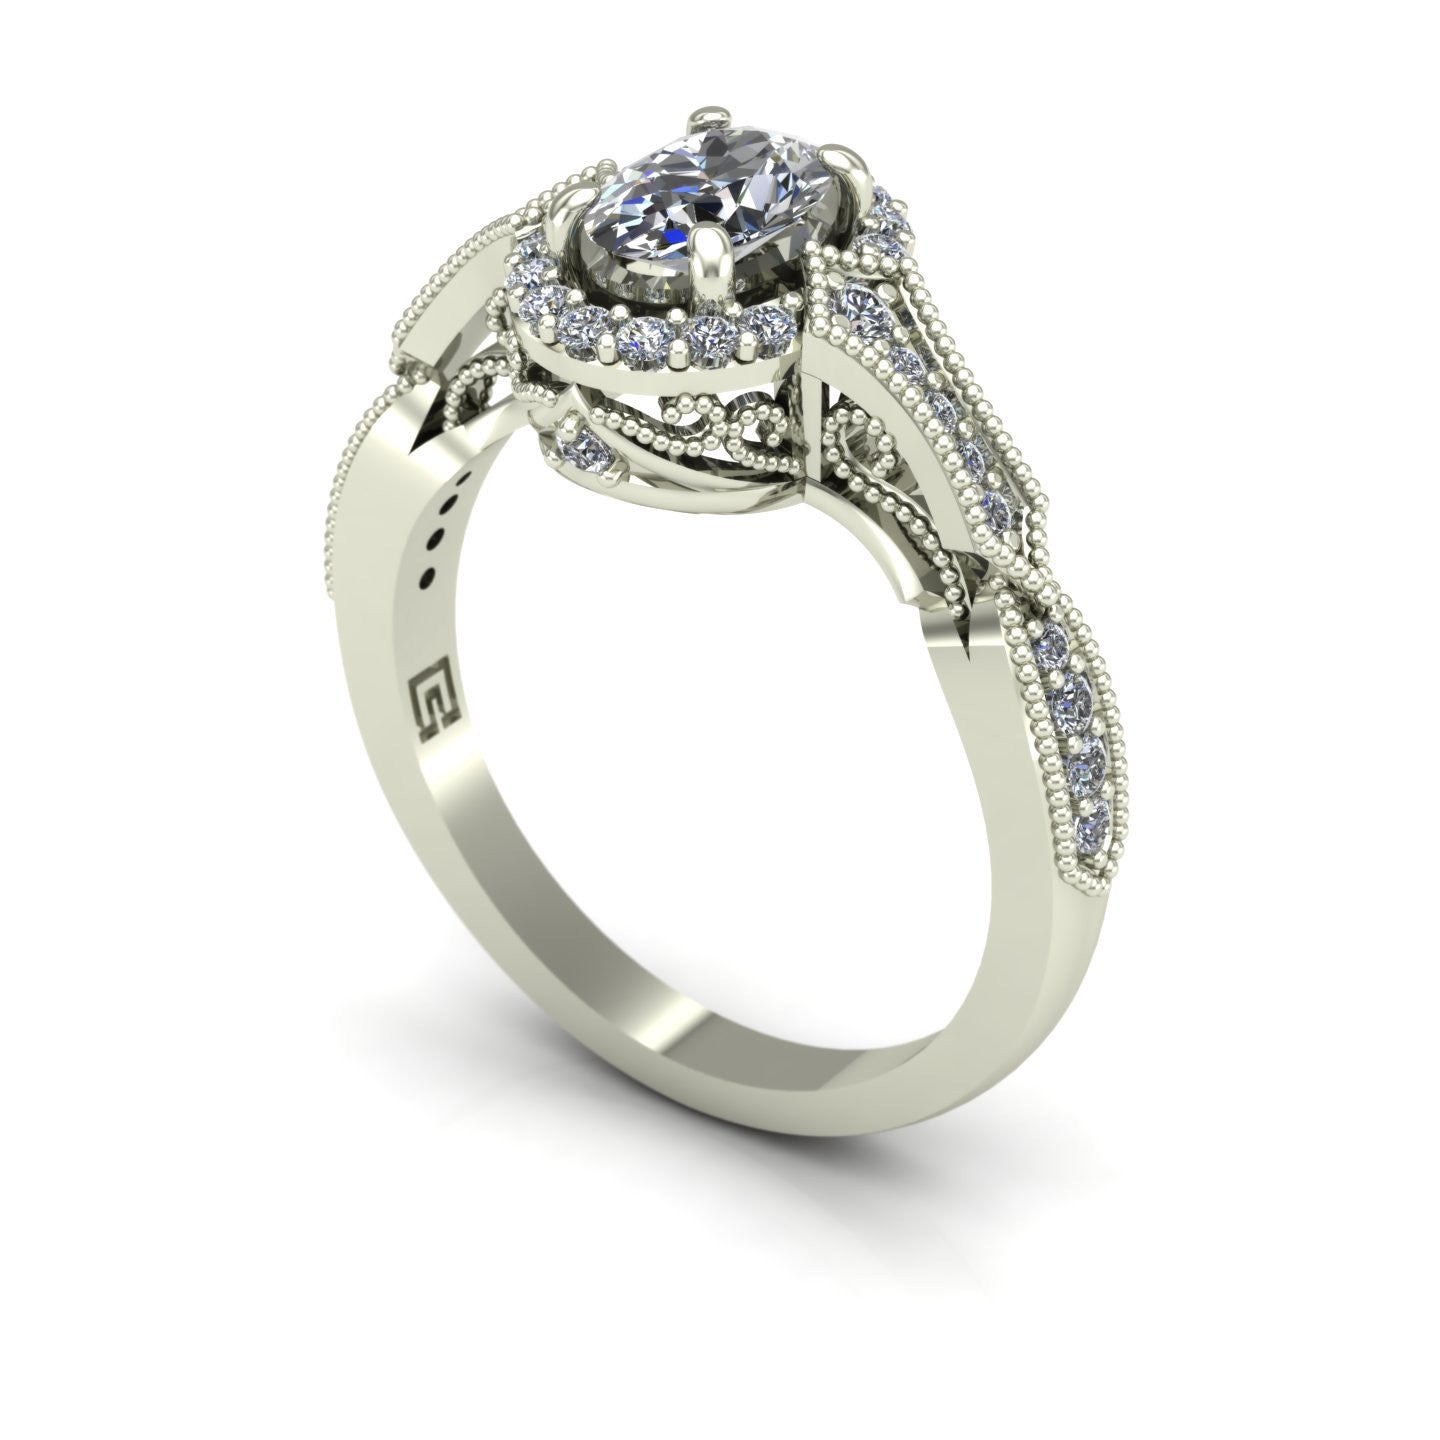 Oval diamond vintage style engagement ring in 14k white gold